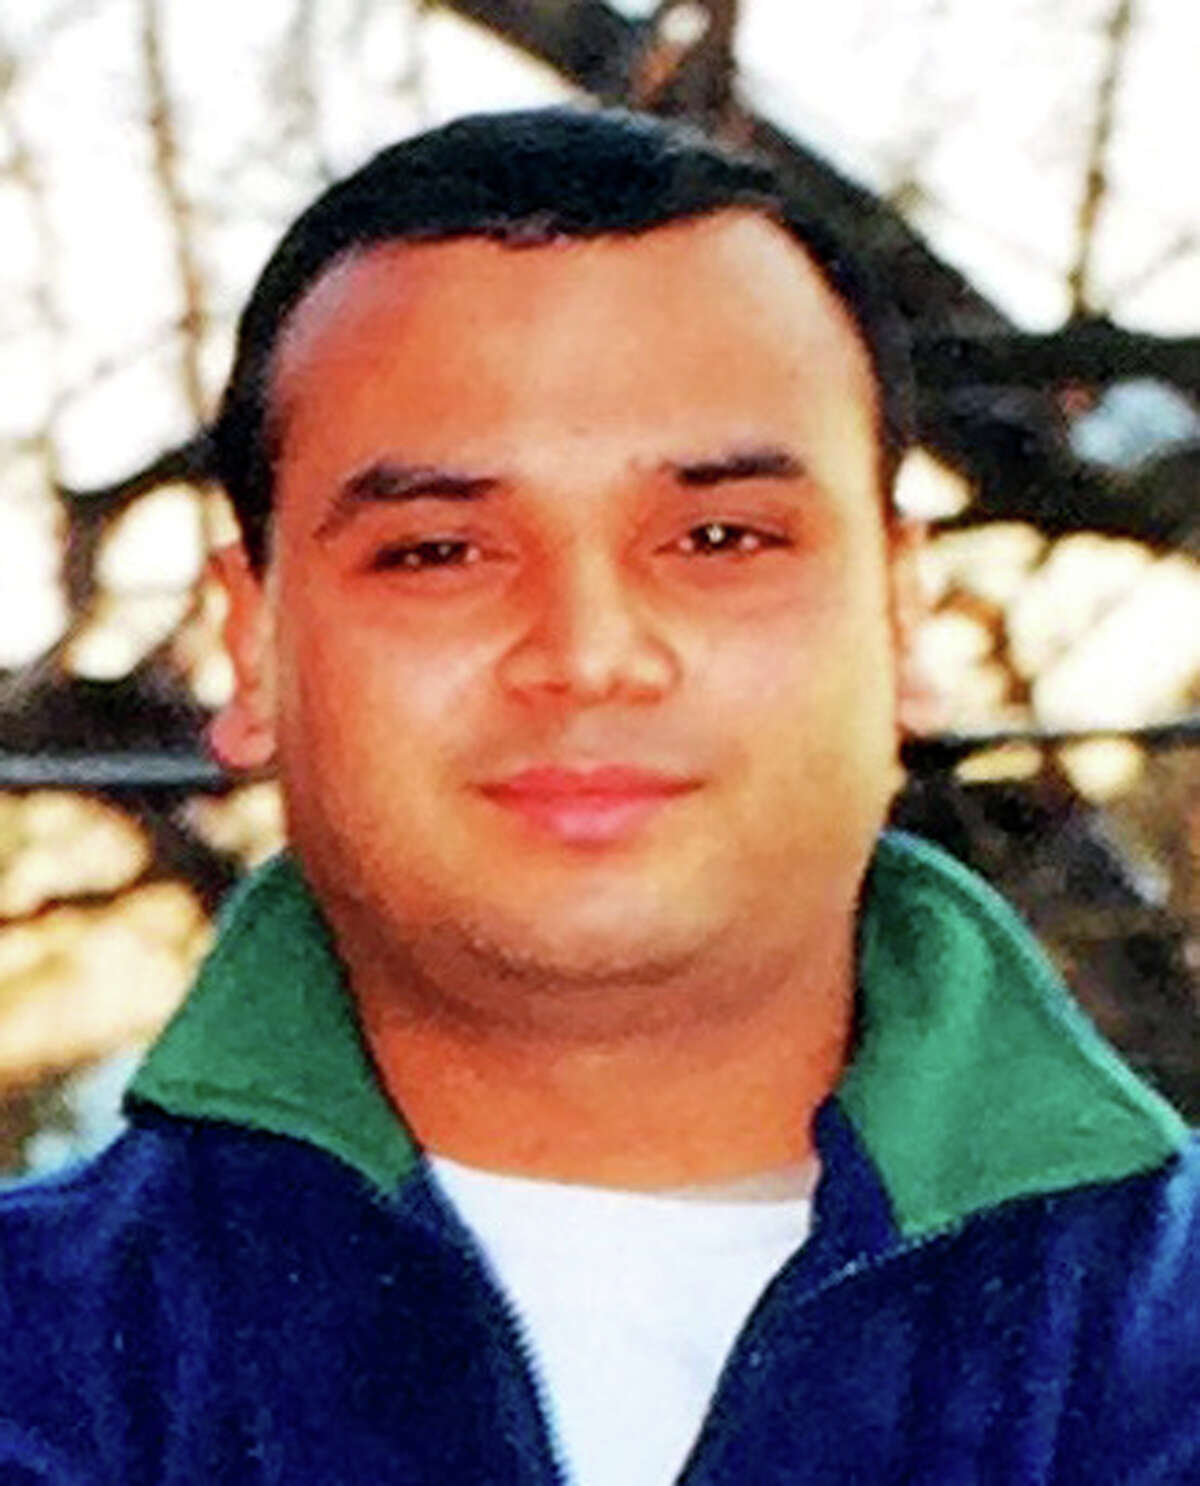 Aditya Tomar, age 41 : The  Danbury resident was killed February 3 when a Metro-North train collided with an SUV on the tracks in Valhalla, N.Y.